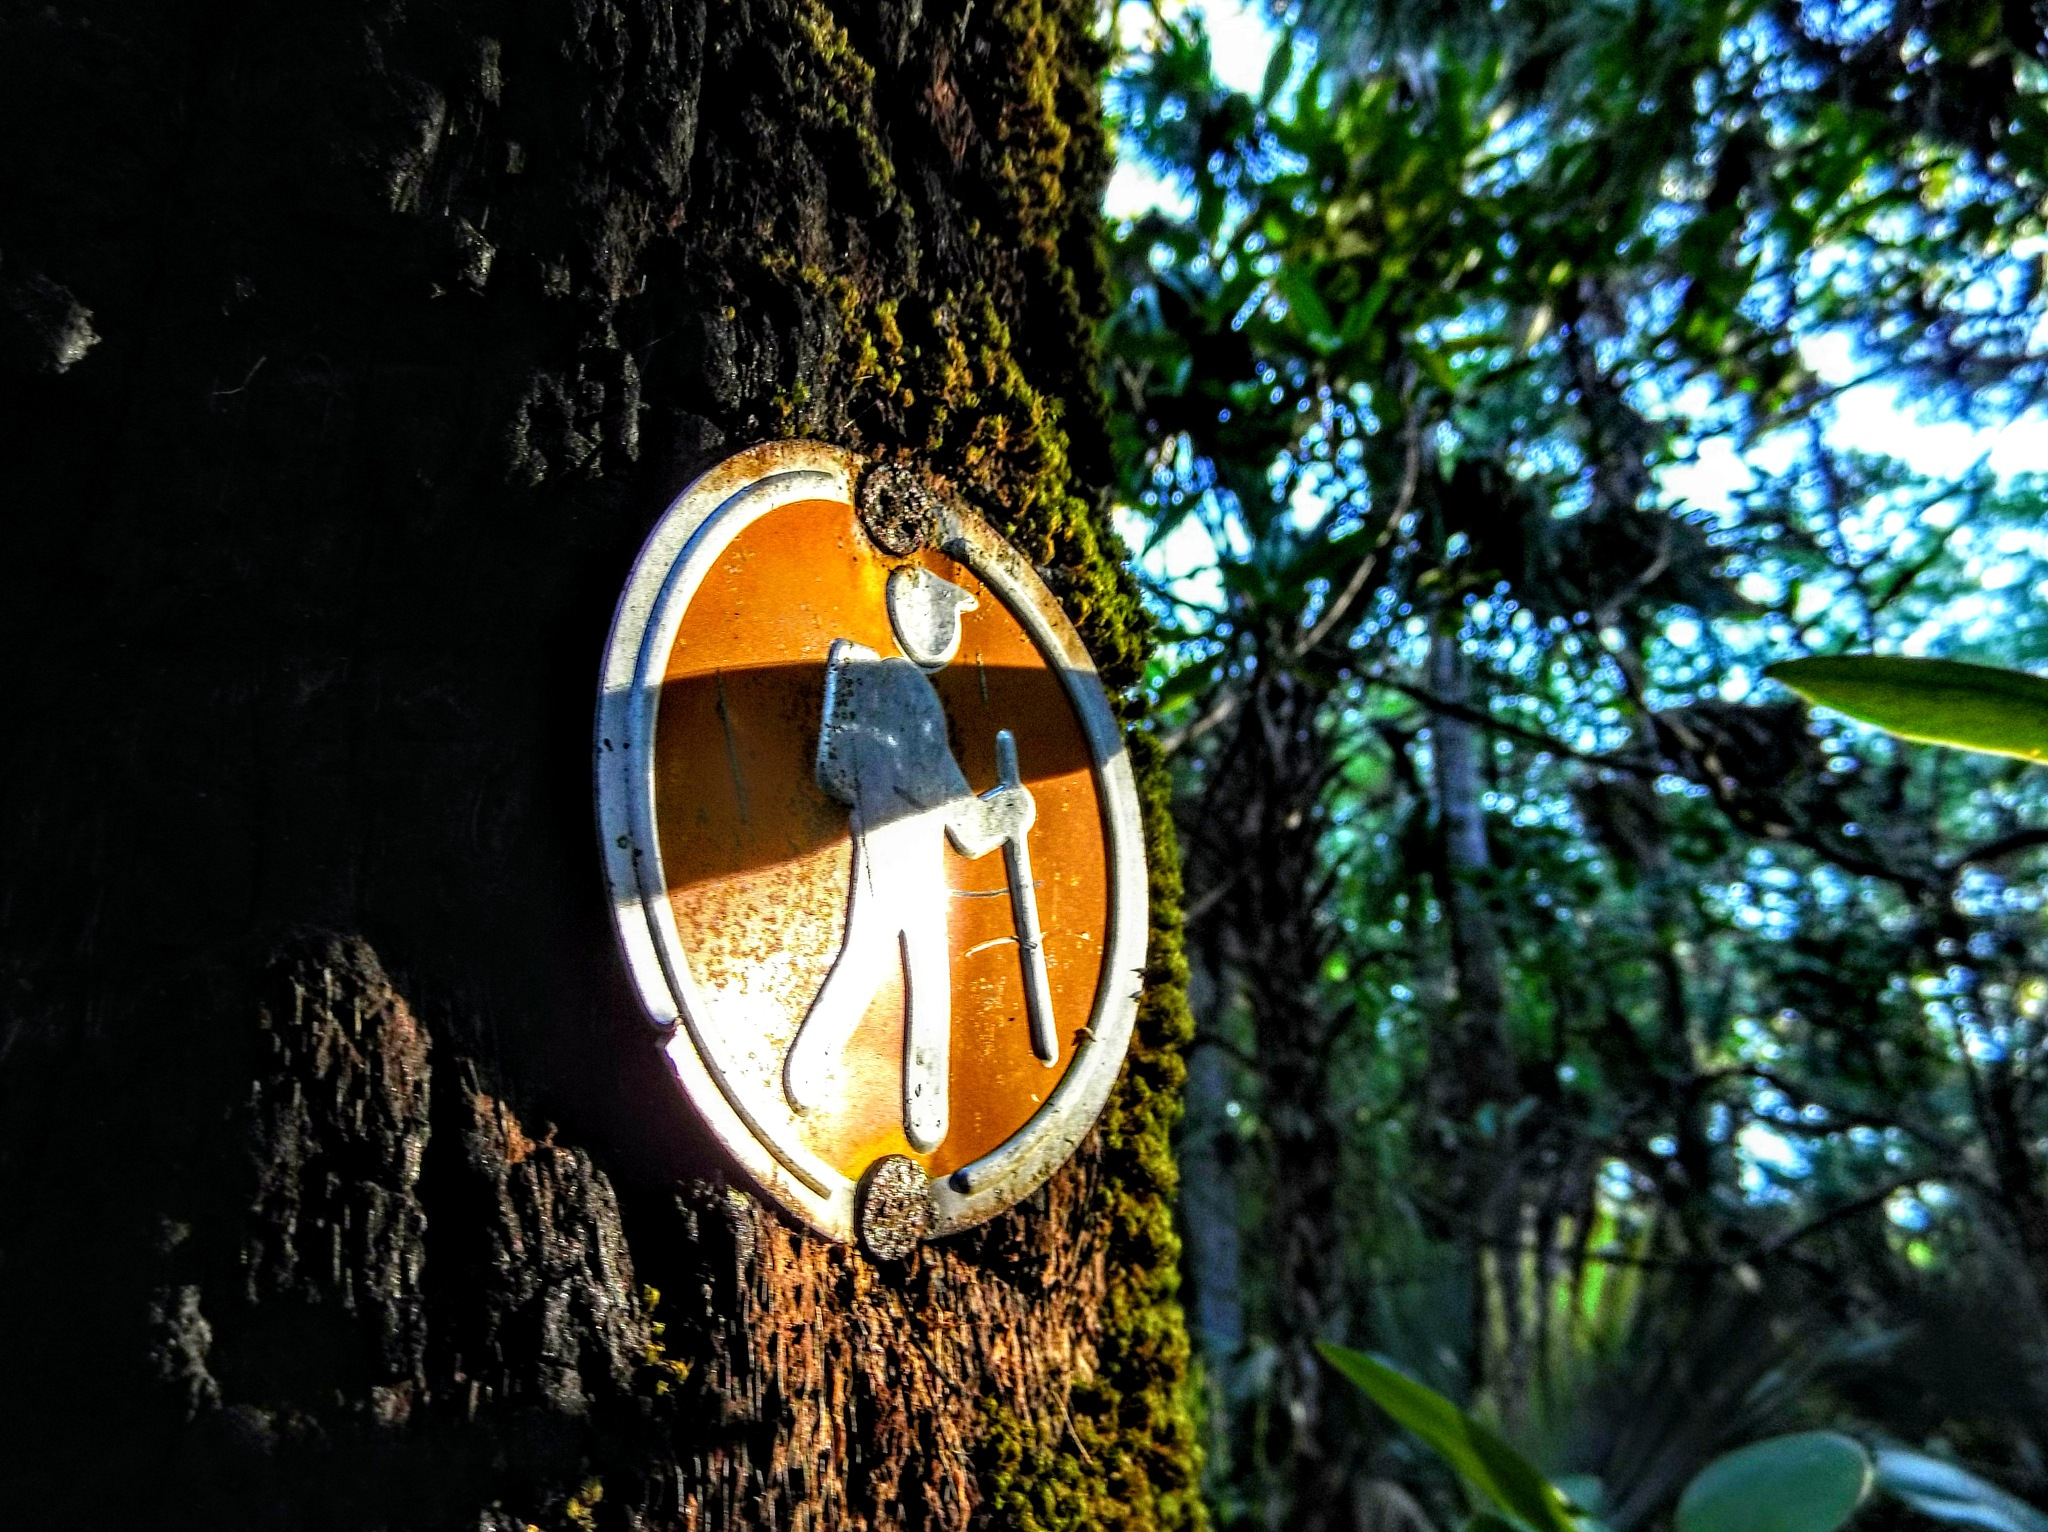 Trail Marker by Todd